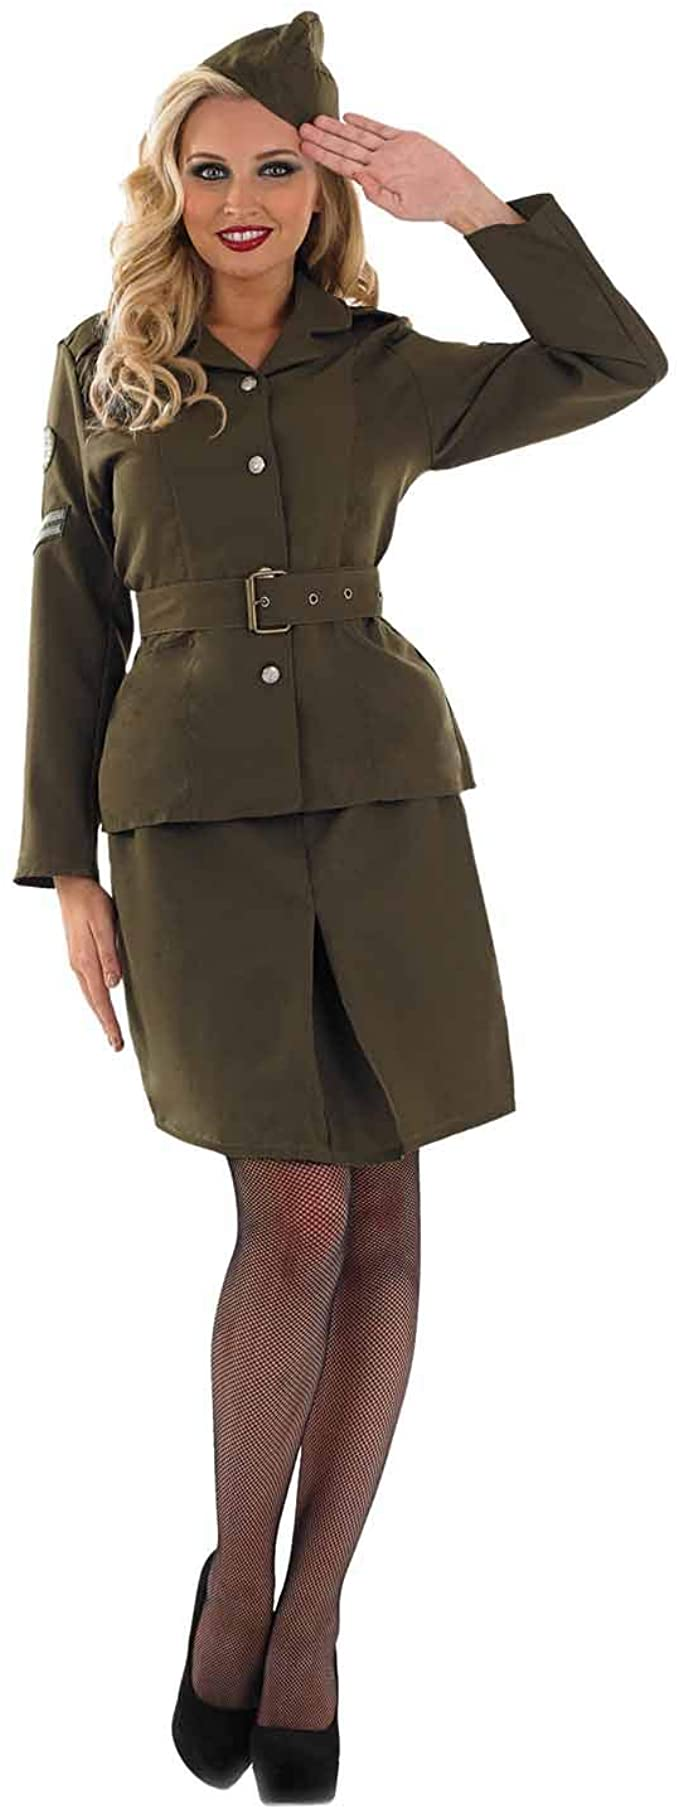 1940s Costumes- WWII, Nurse, Pinup, Rosie the Riveter fun shack Military Costume for Women Army Khaki WW2 Halloween Costumes for Women Available in Sizes Small Medium Large XL XXL  AT vintagedancer.com